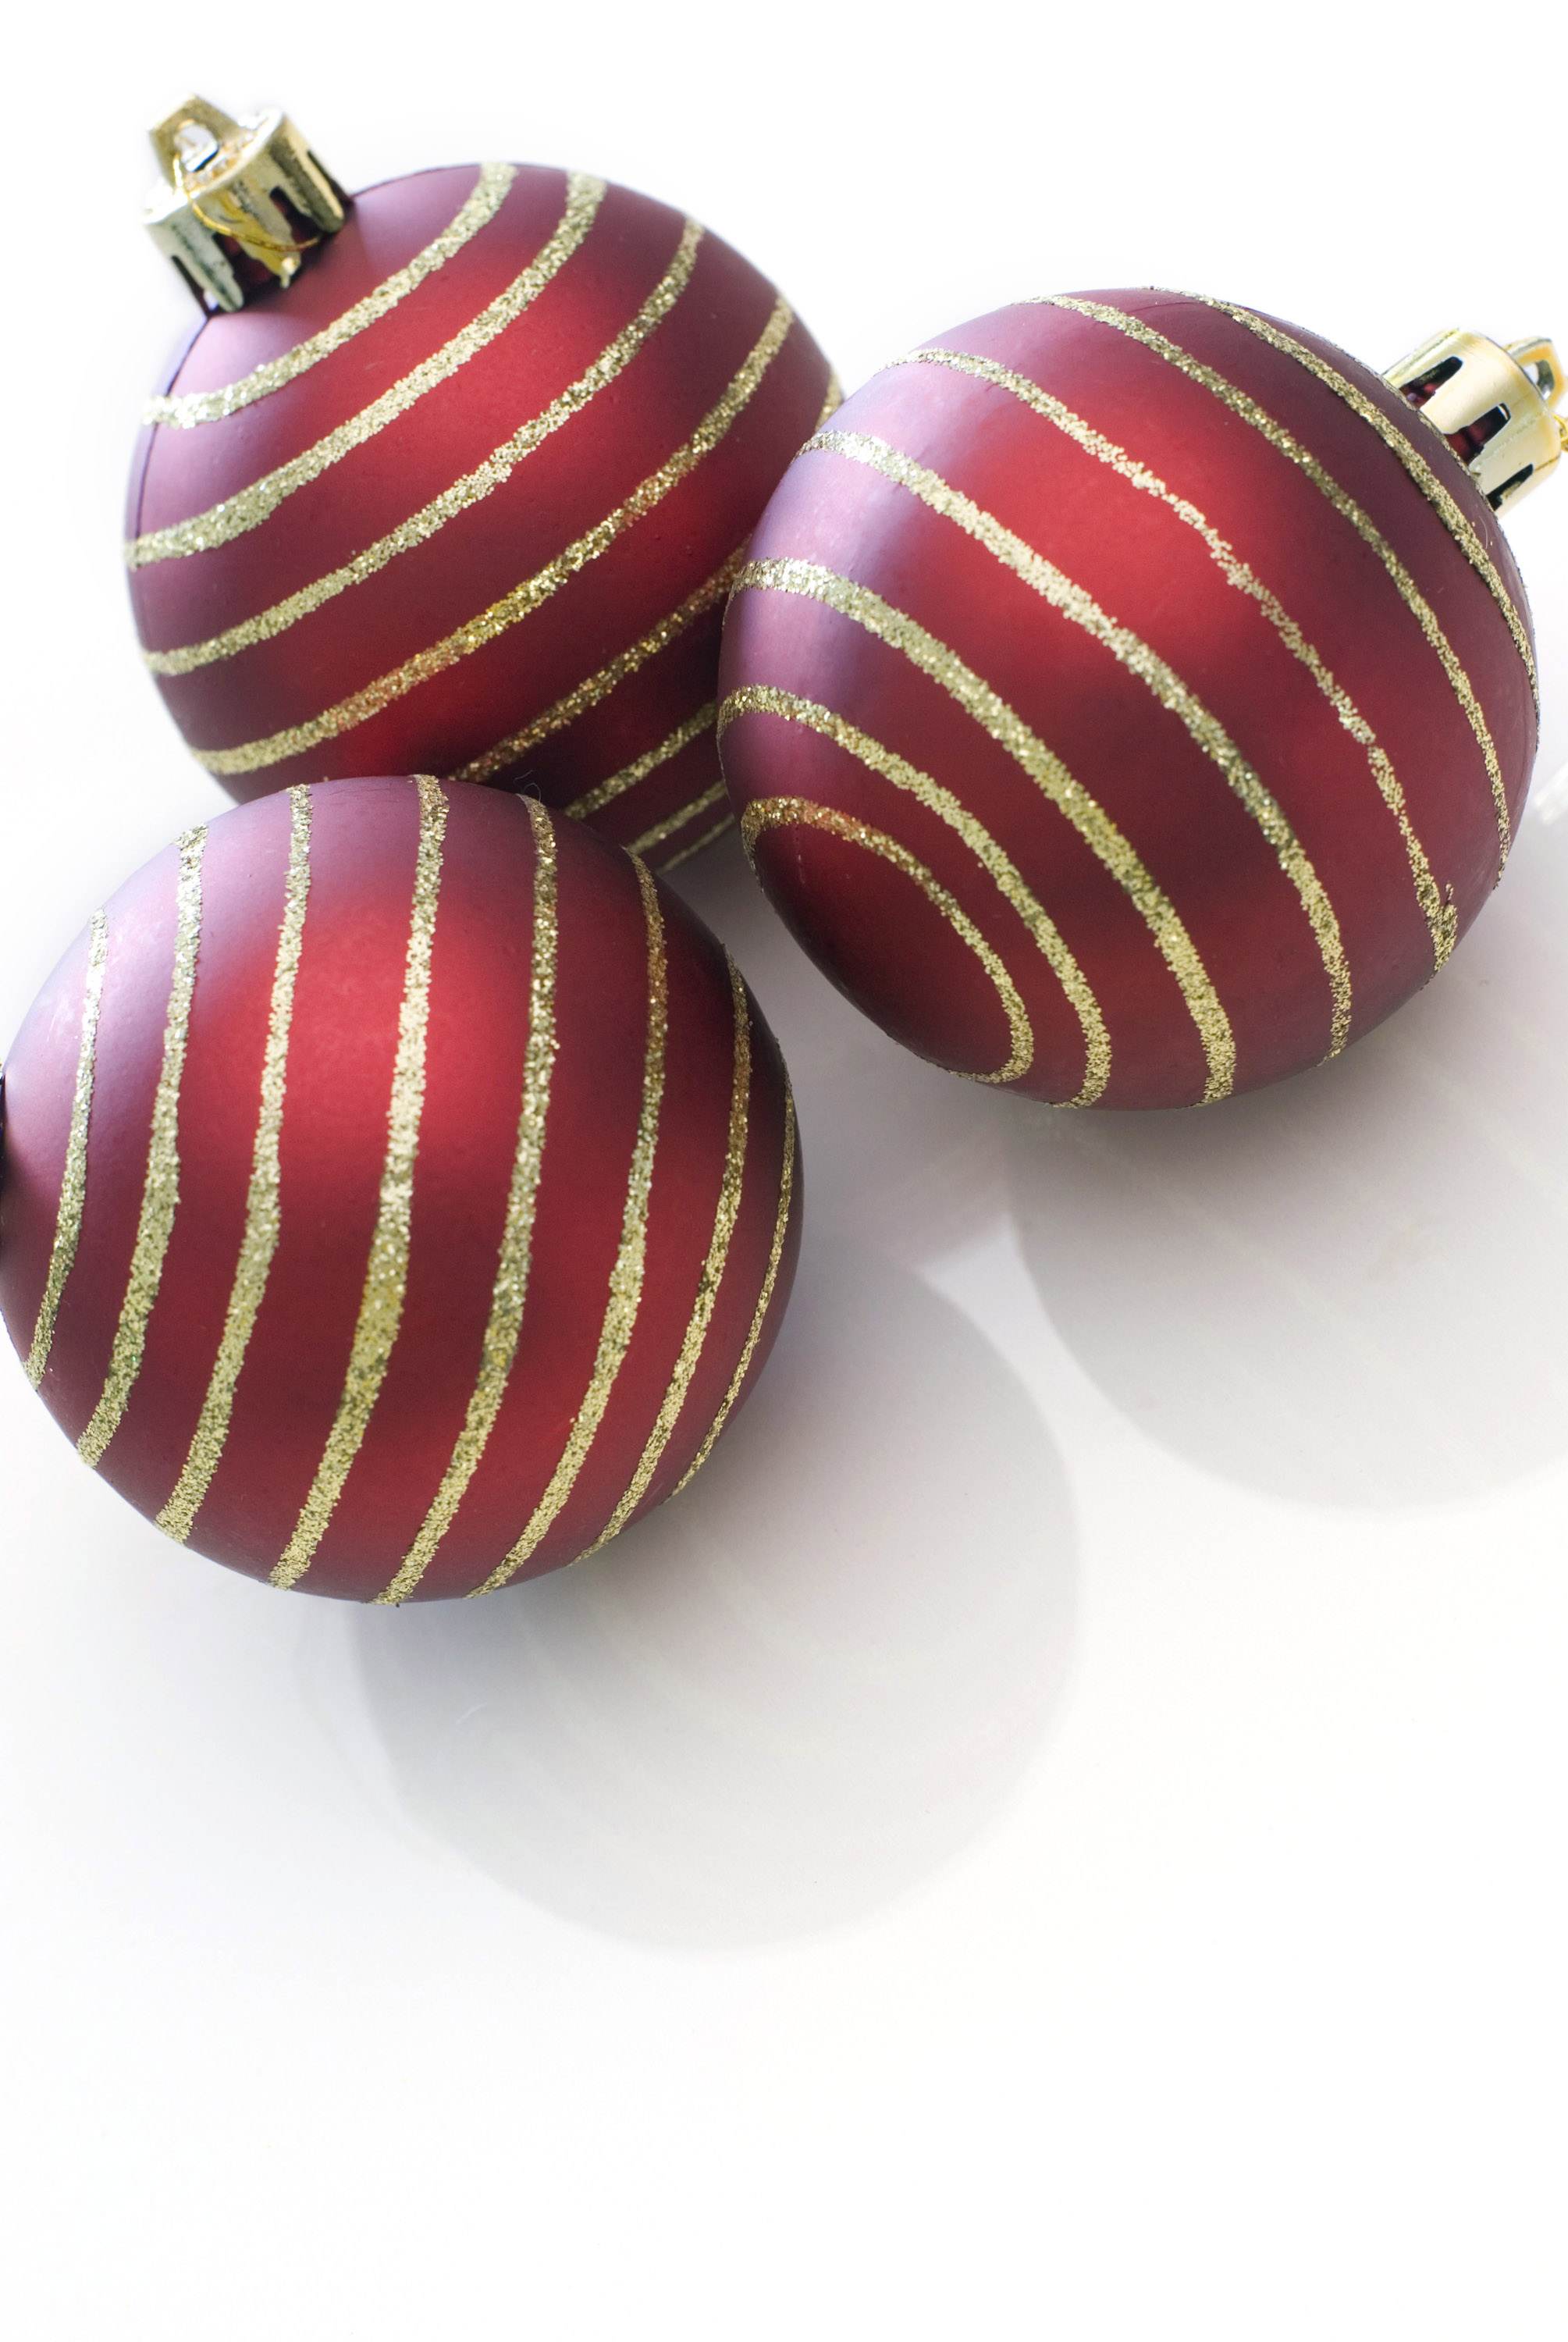 a trio of red christmas tree baubles with gold glitter stripes